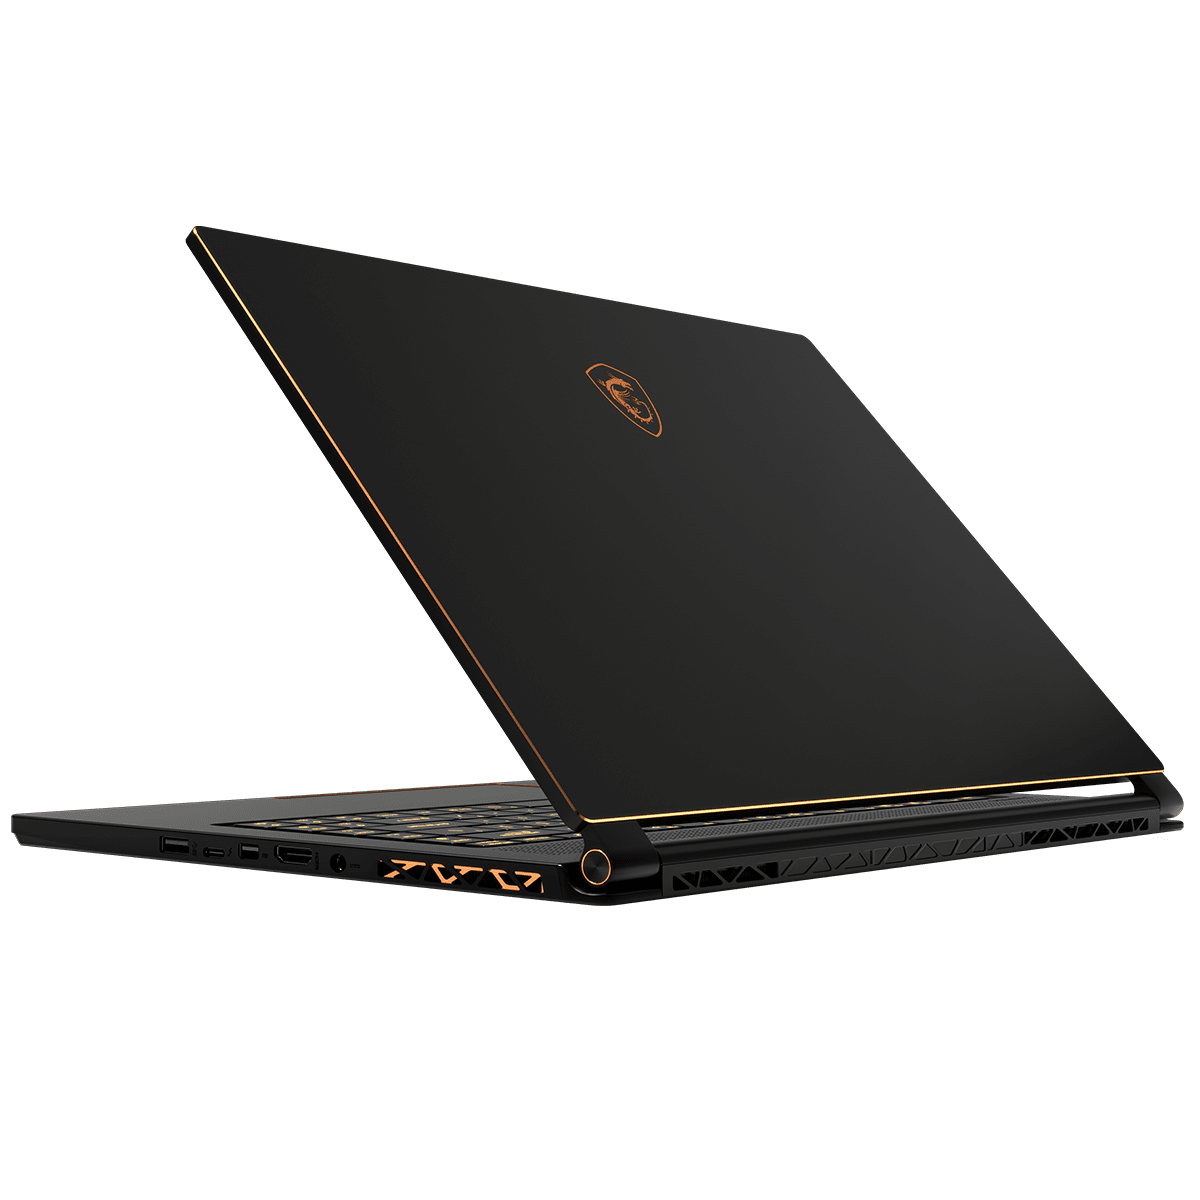 MSI GS65 Stealth-483 Gaming Laptop